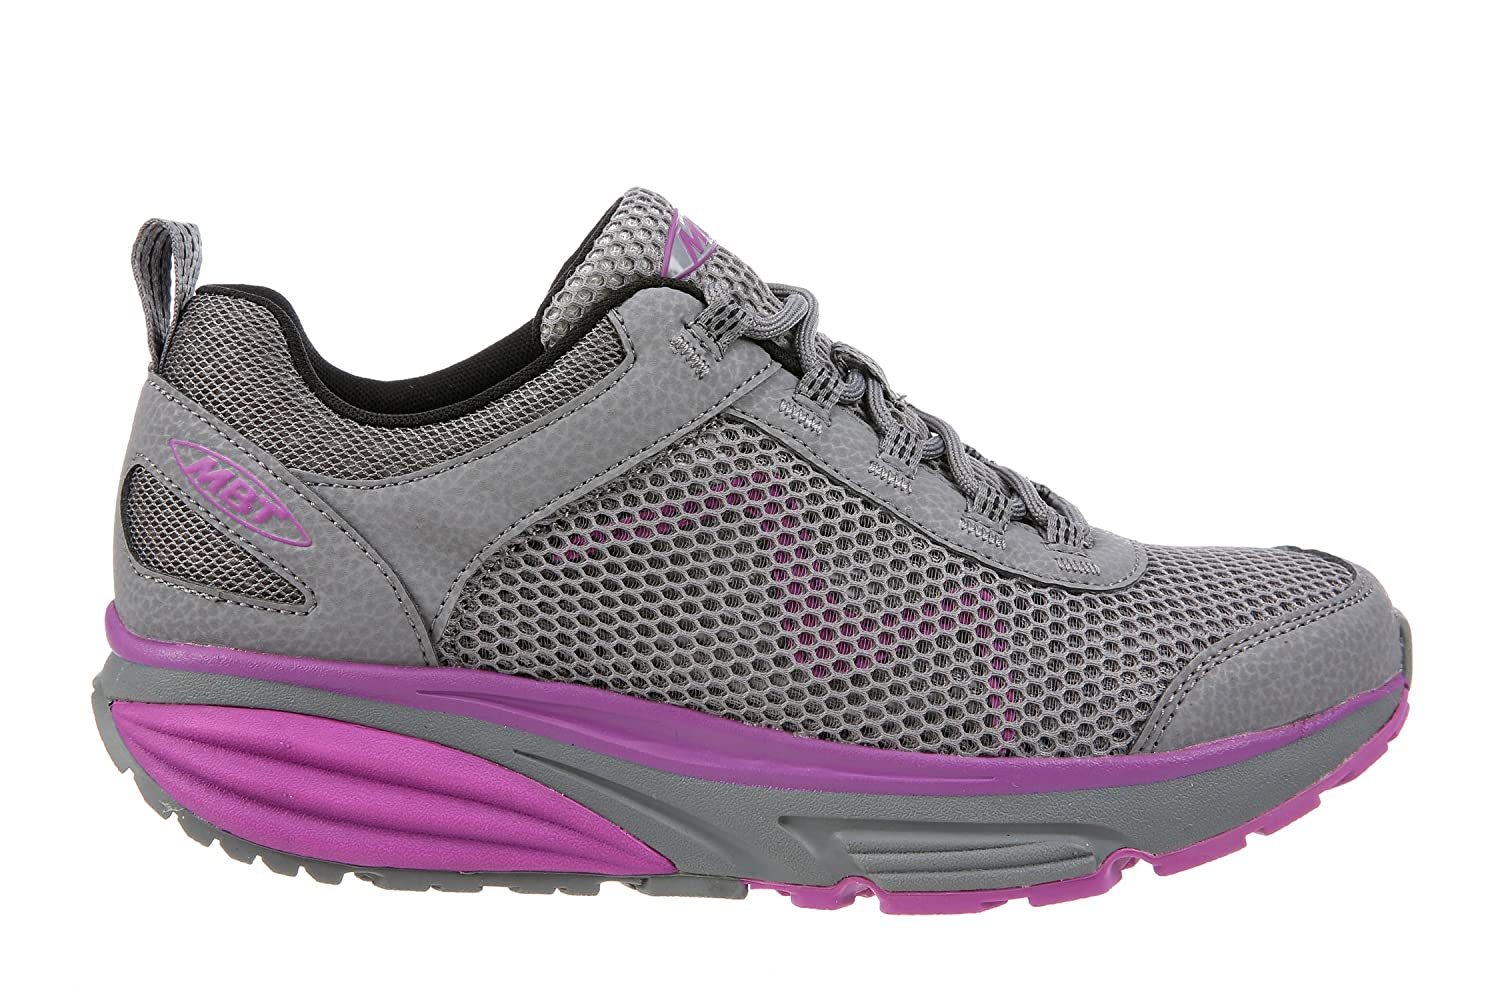 MBT Shoes Women's Colorado 17 Lace Up Athletic Shoe Mesh Lace-up B0741S6PSD 10 B(M) US|Grey/Purple